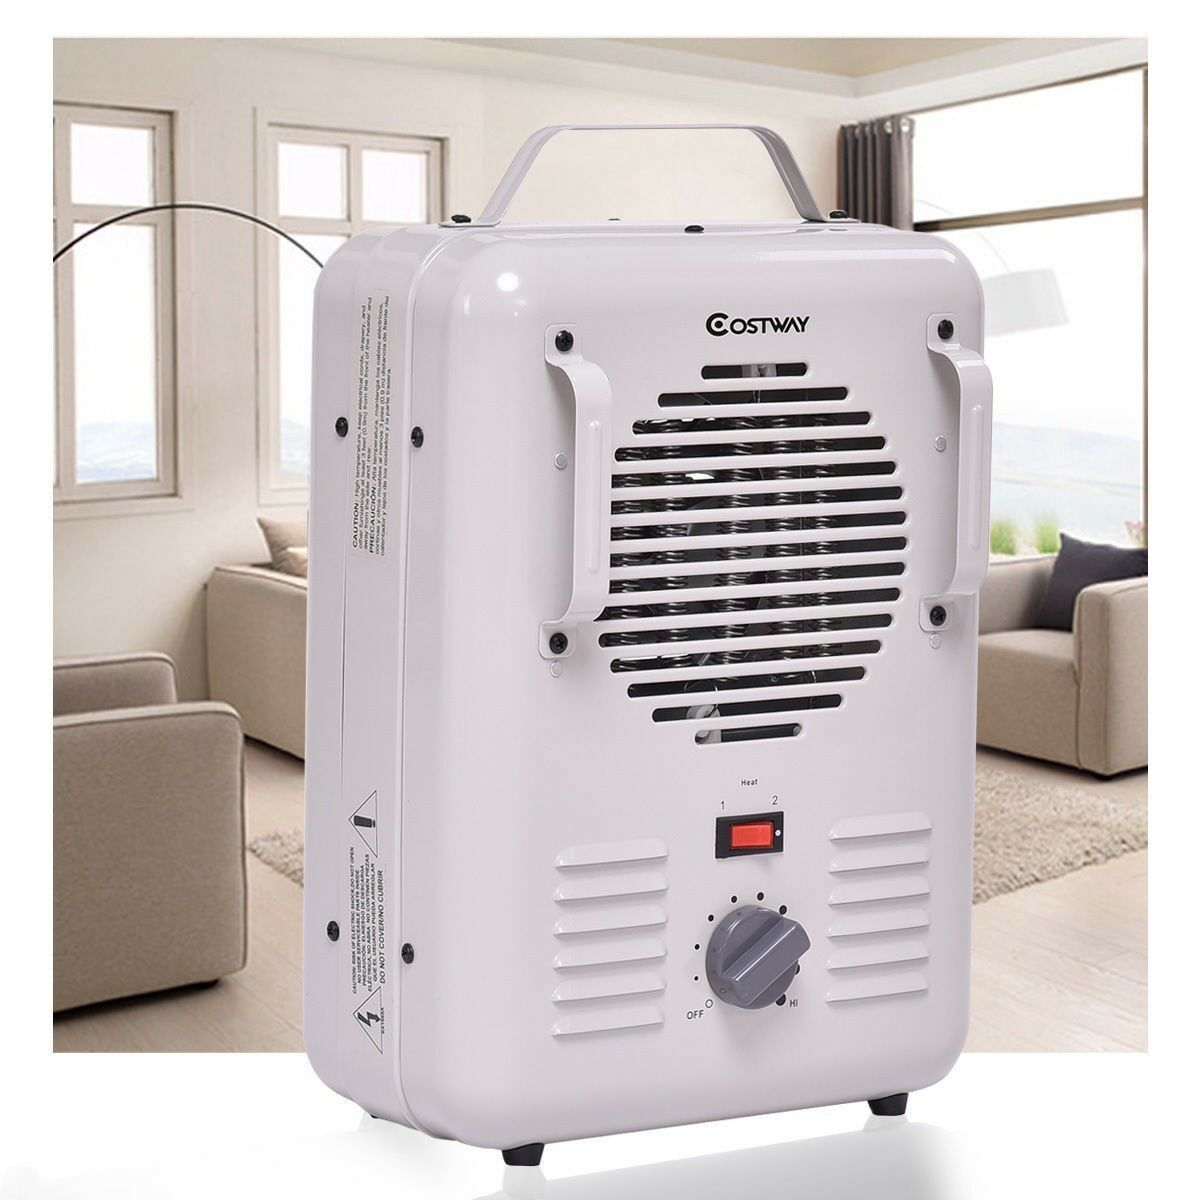 Tangkula 1500w Electric Portable Quart Heater Thermostat Room Air Baseboard Heaters As Well Small With Stock Photo